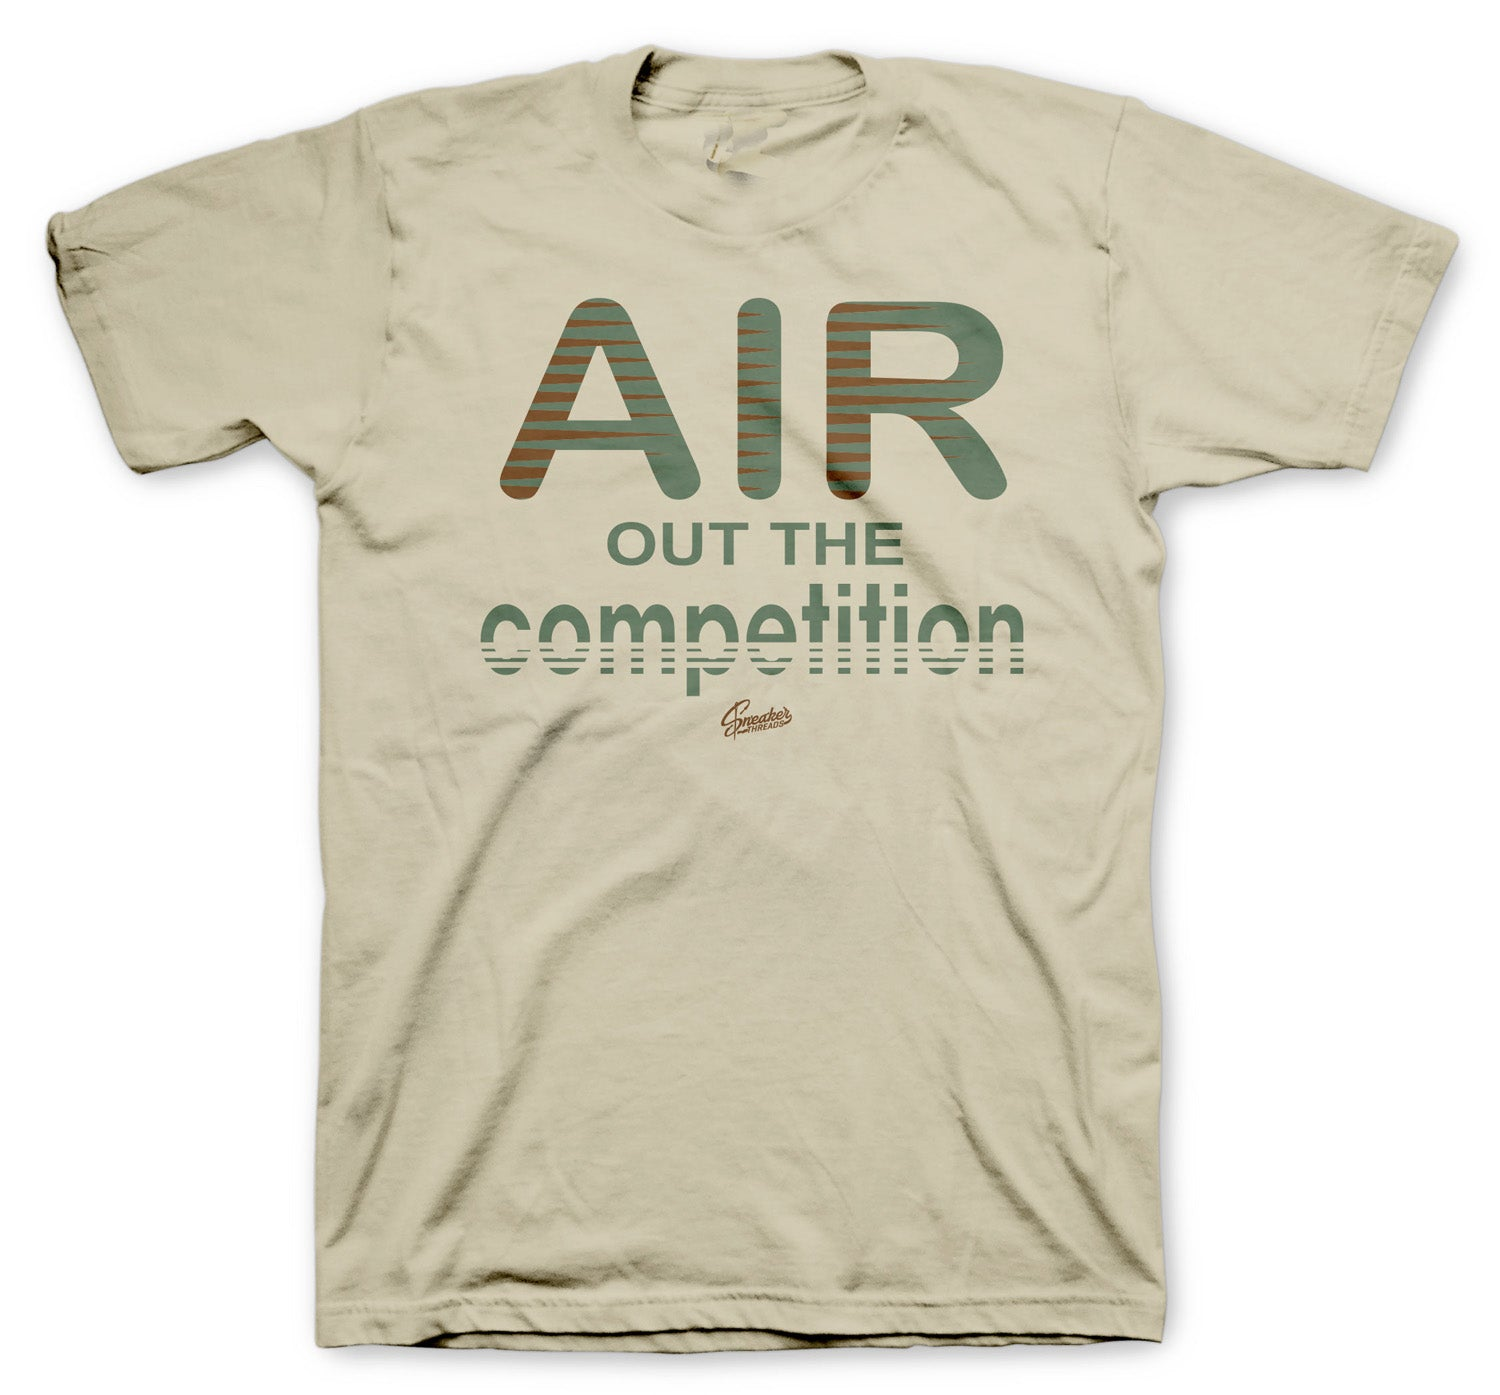 tees created to match perfect with the Jordan 10 desert clay camo sneaker collection